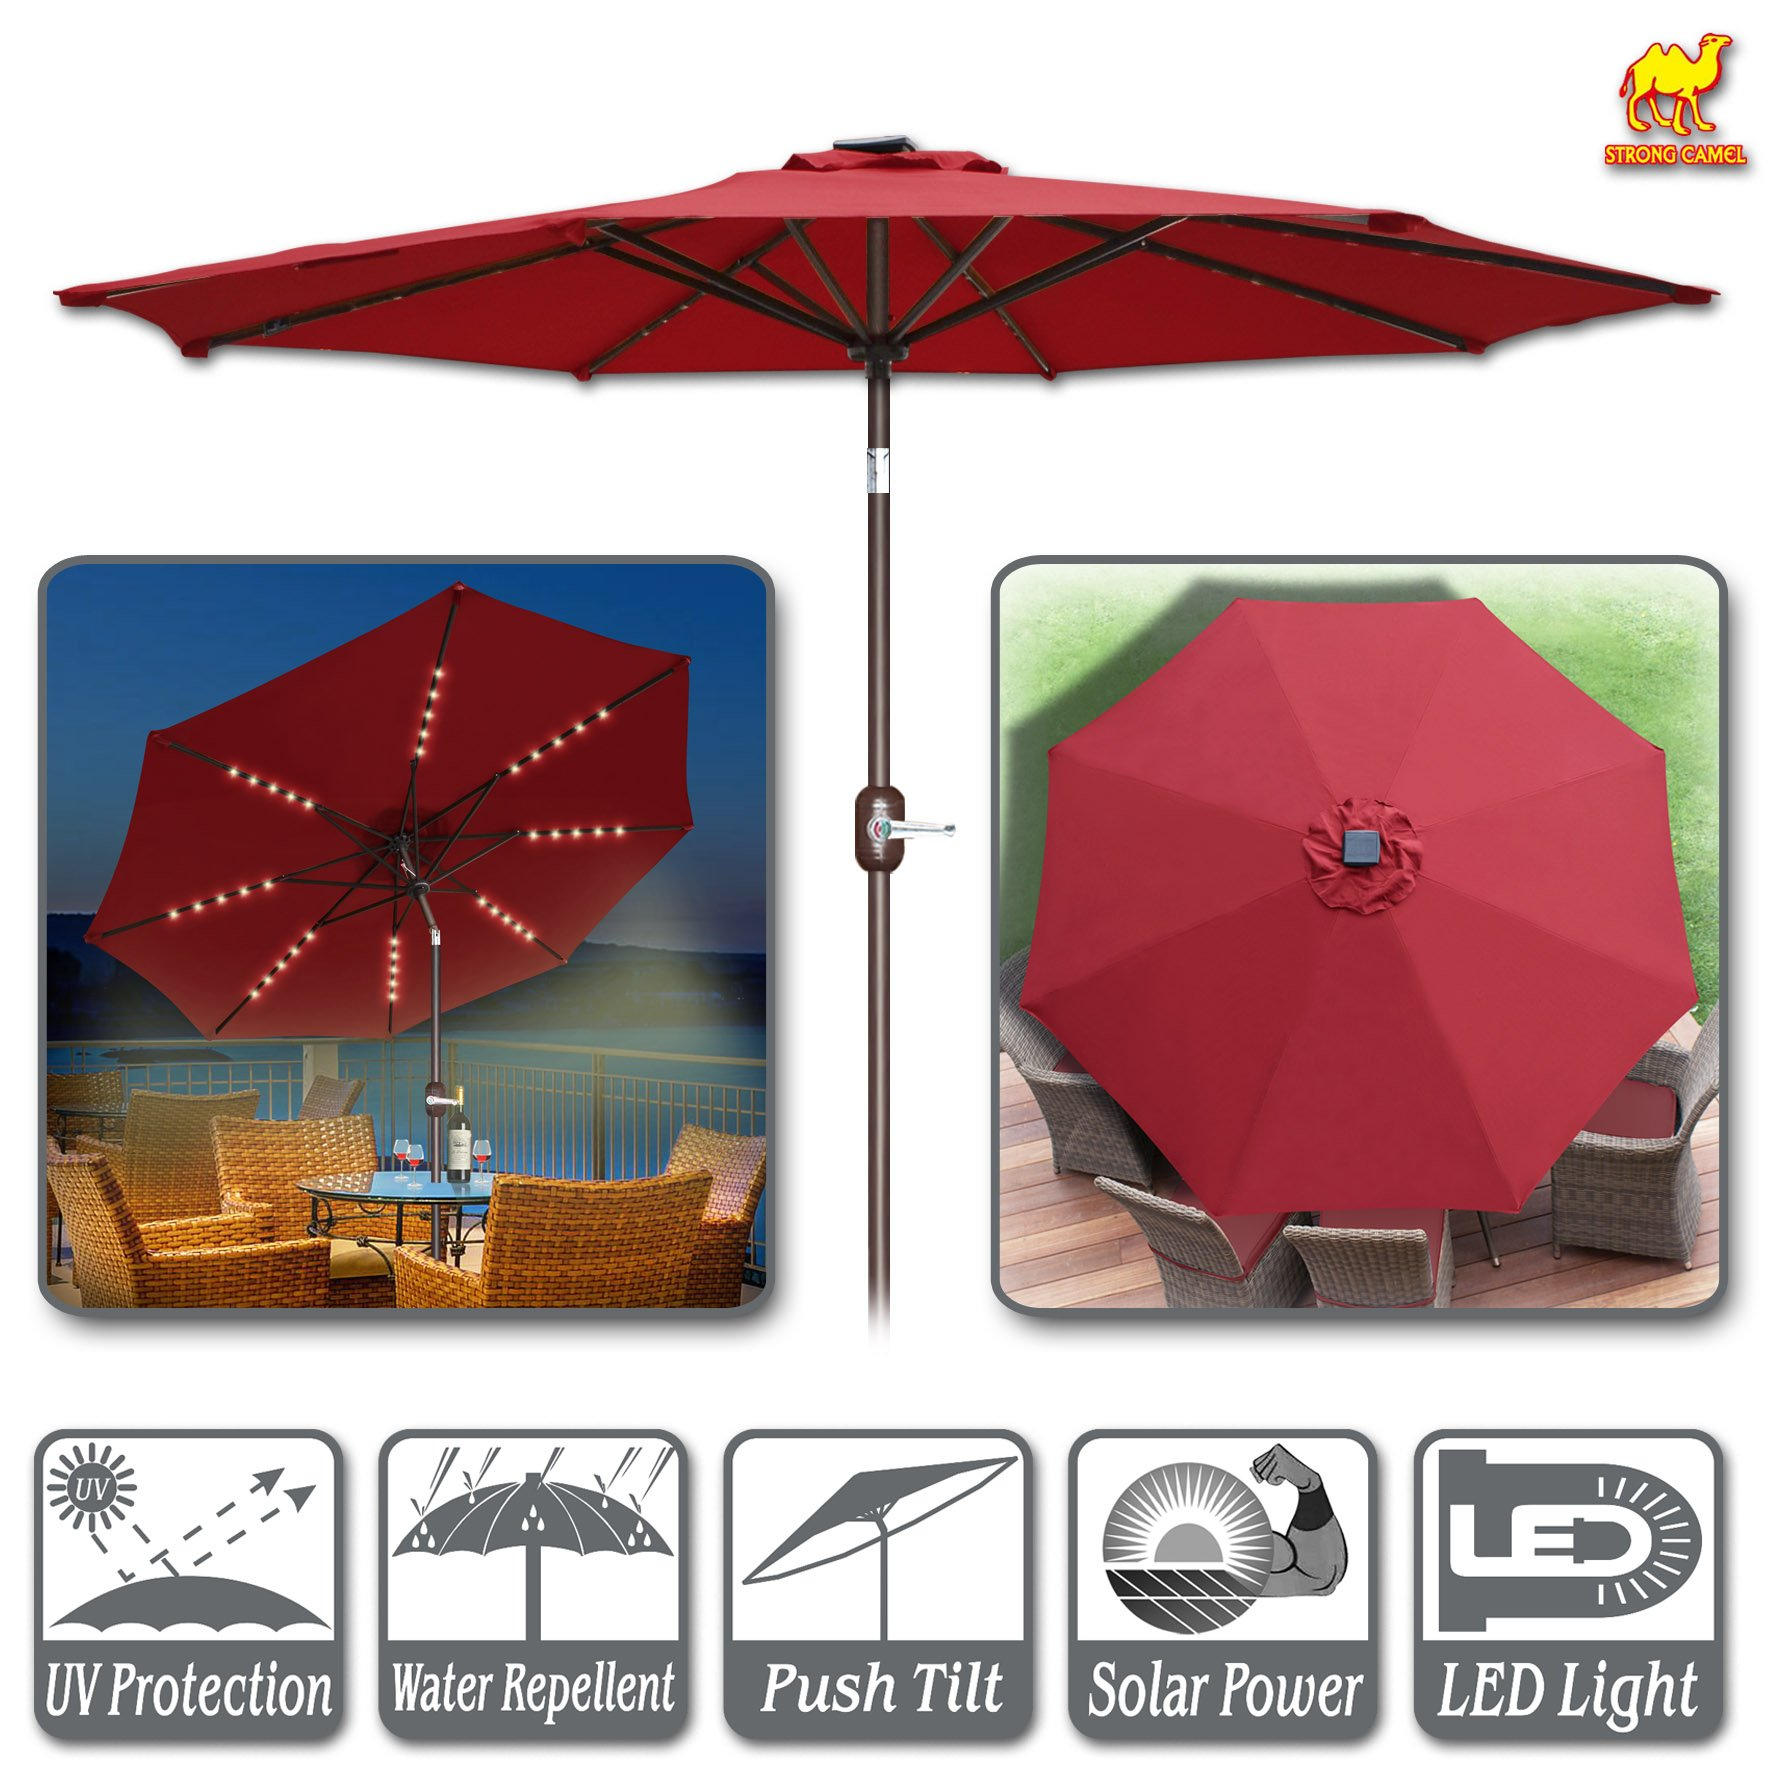 Strong Camel 9ft Solar Lighted Patio Umbrella 40 LED Light Market with Tilt and Crank Parasol Table Round Light Umbrella Sunshade (Burgundy)